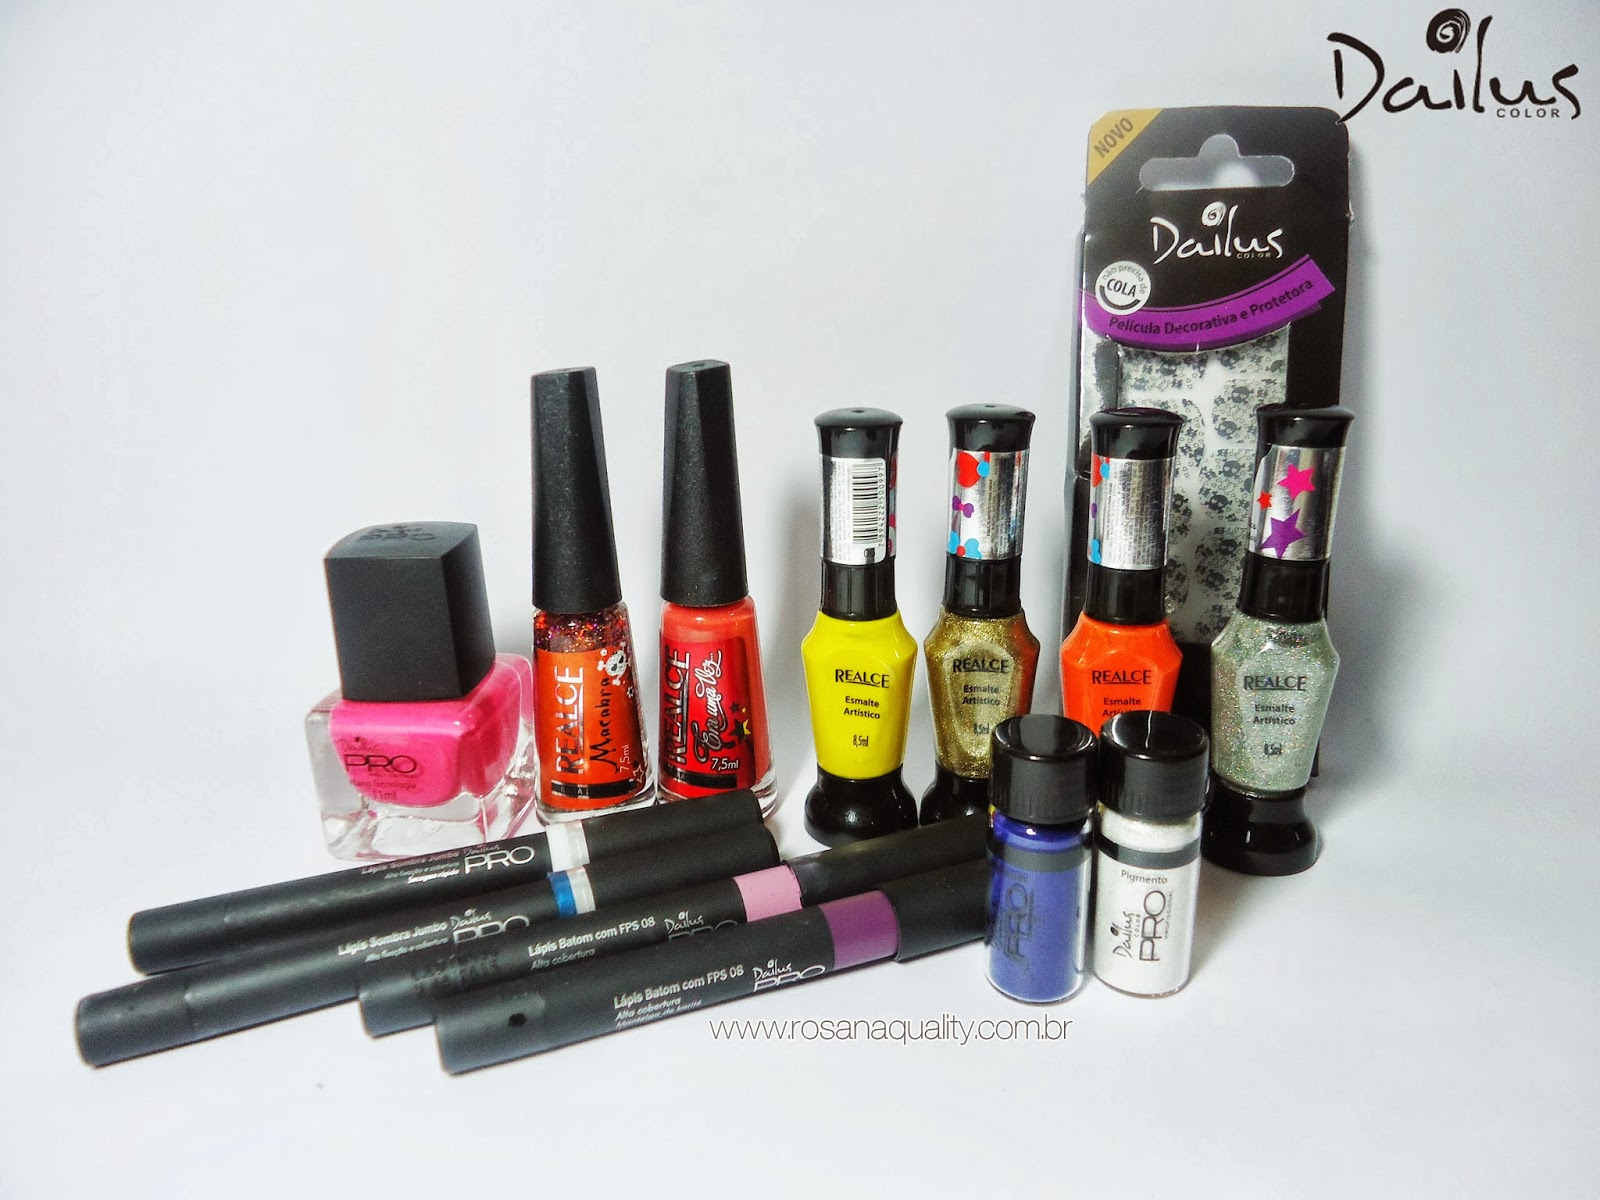 Presskit Dailus Beauty Fair 2013